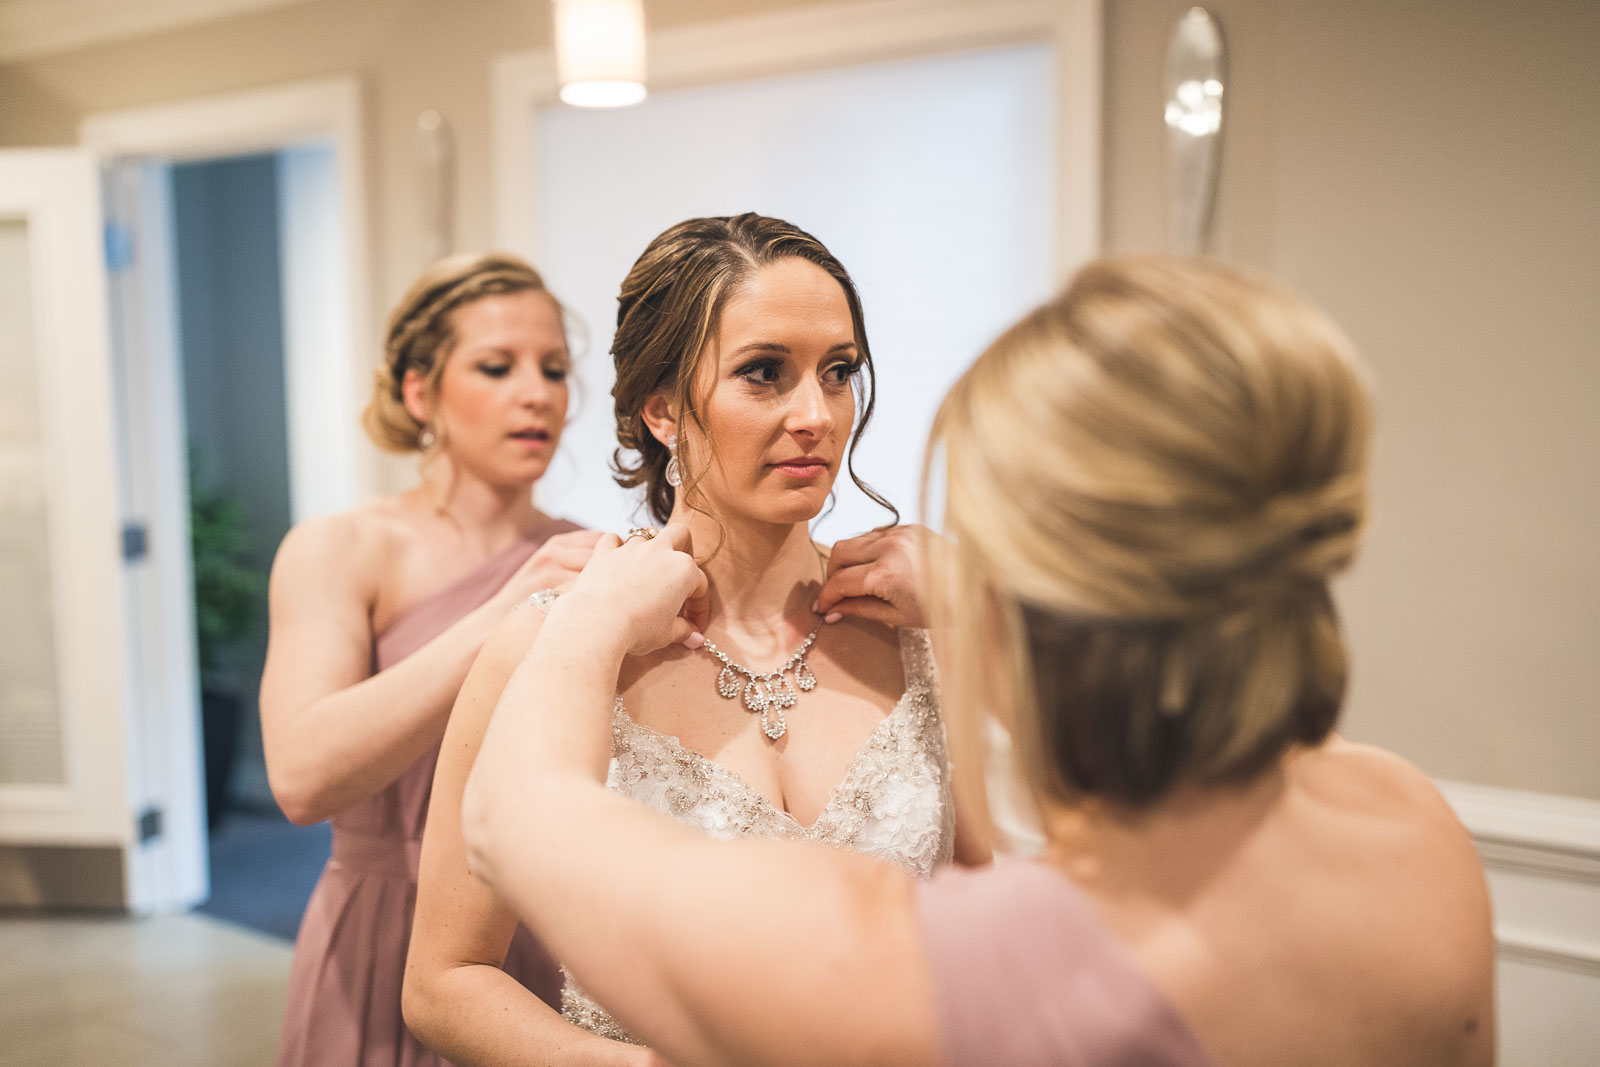 Bridesmaids Help Put on Necklace